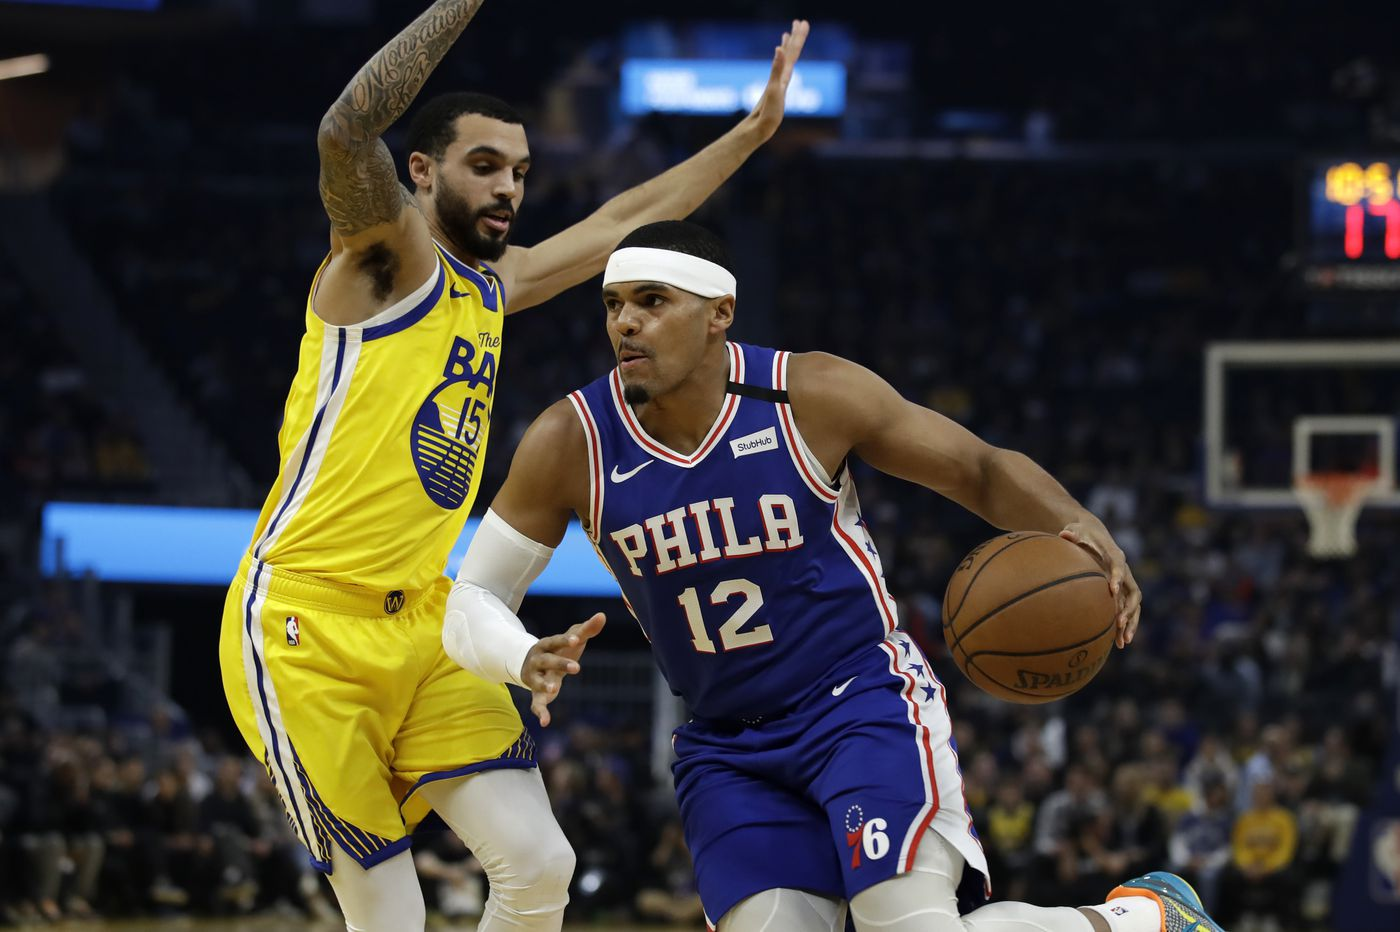 Sixers podcast: Recapping Golden State loss, dissecting coming schedule